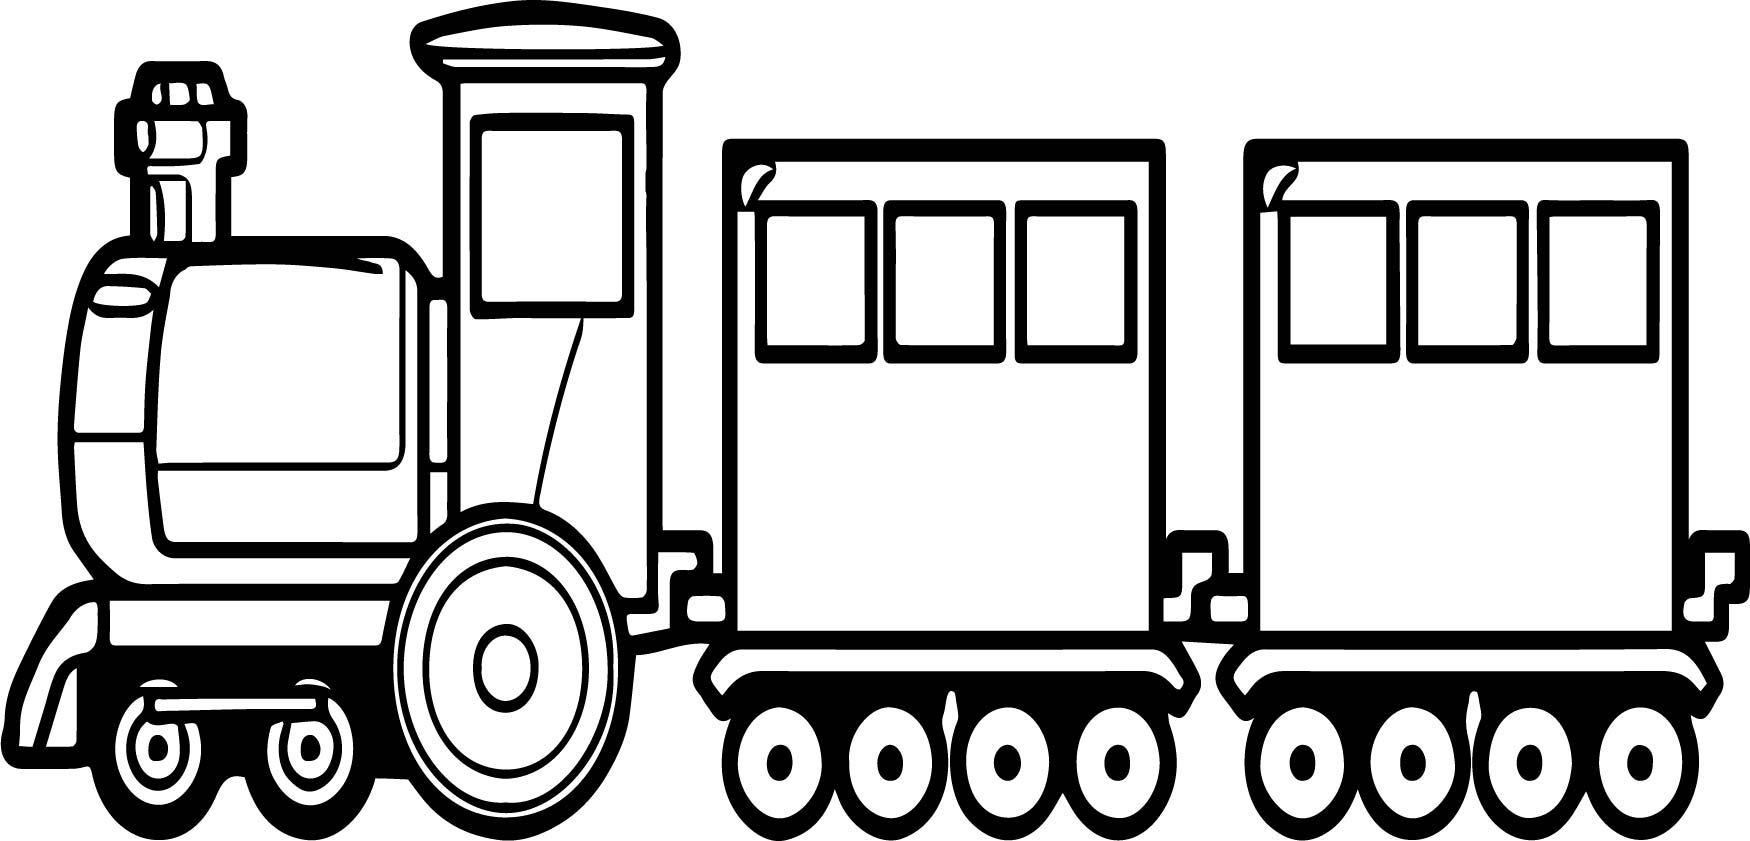 Go Train Coloring Page | Wecoloringpage